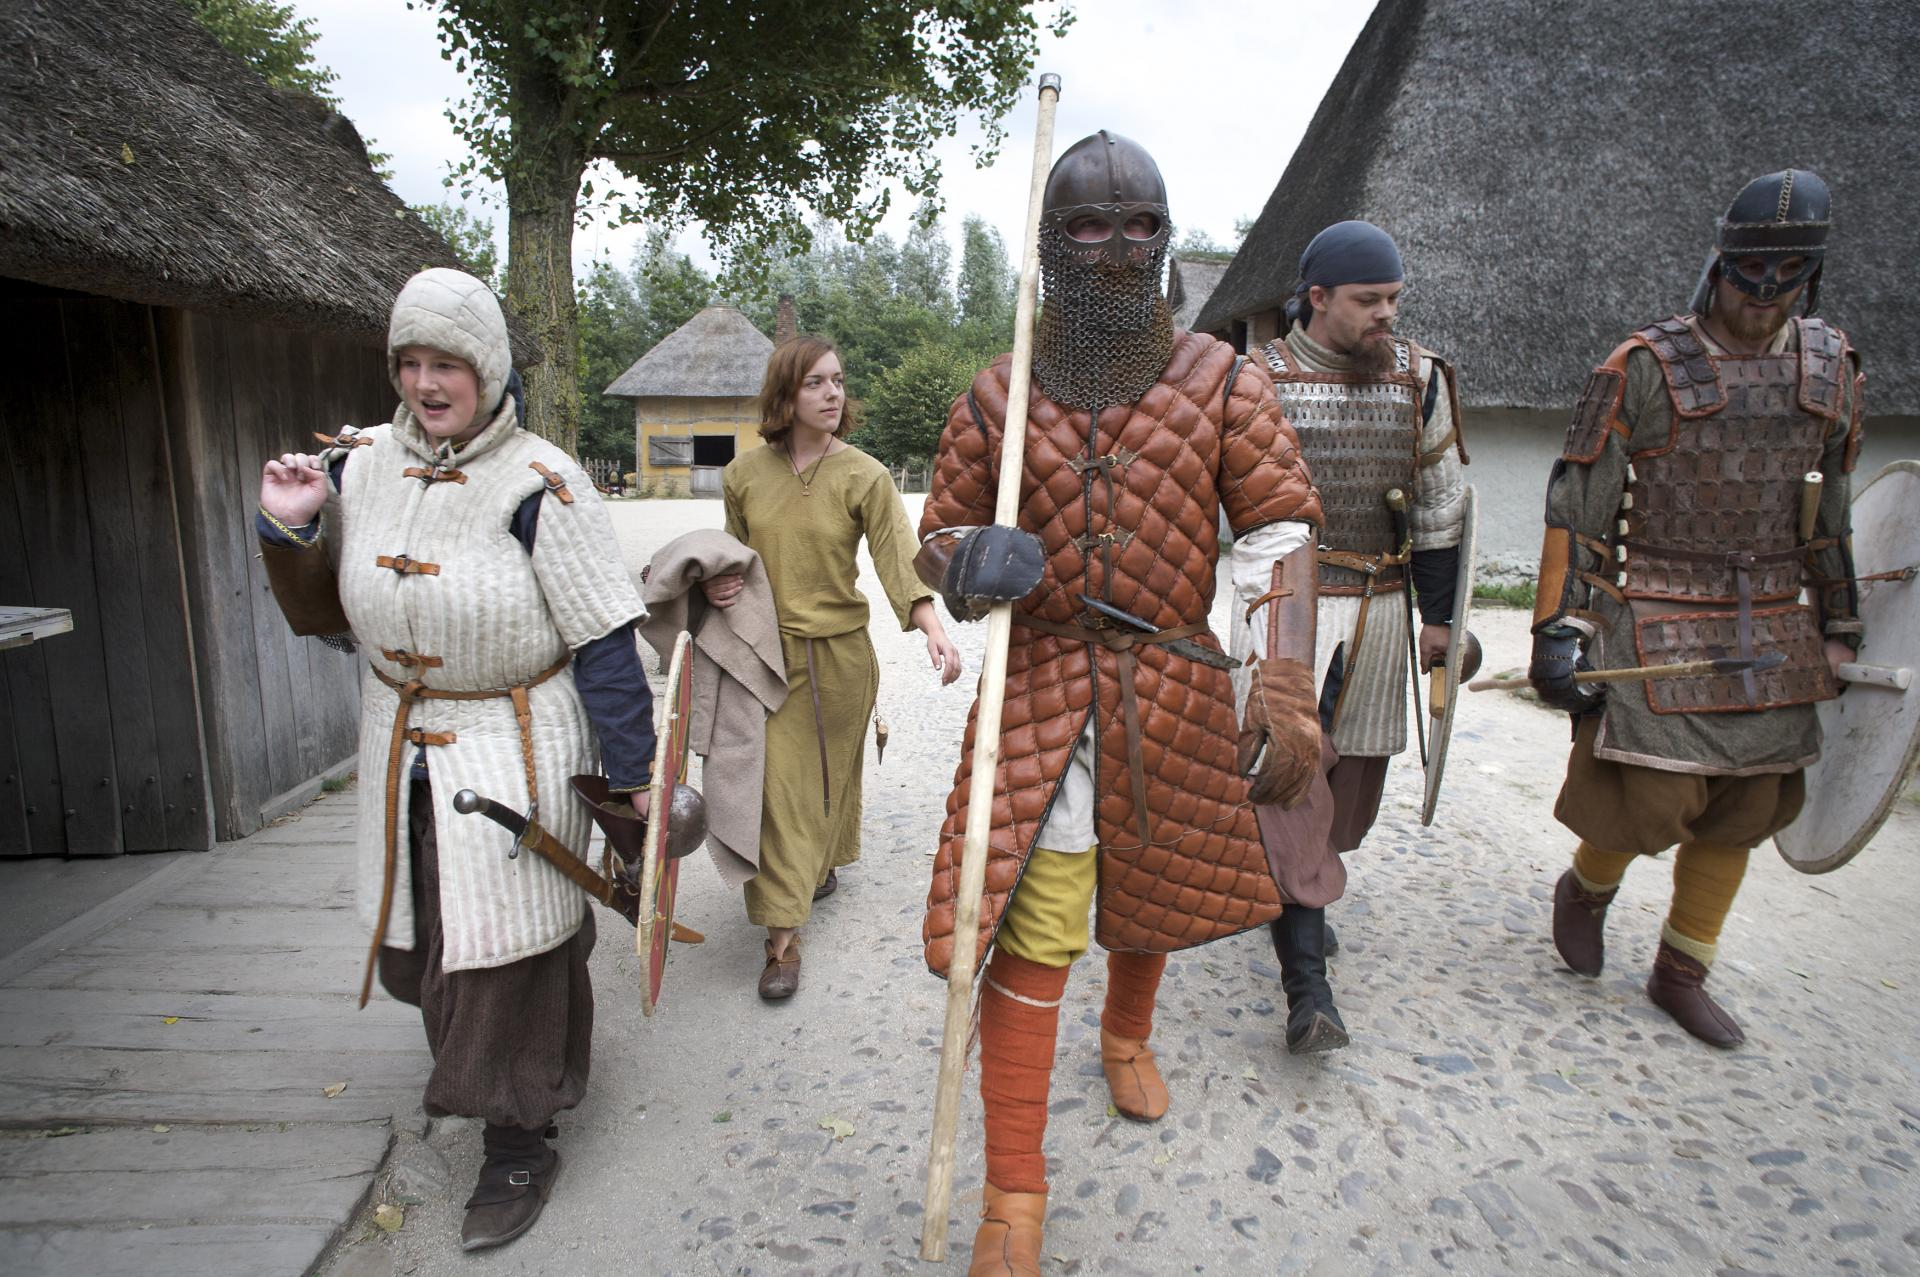 Vikingen veroveren Archeon